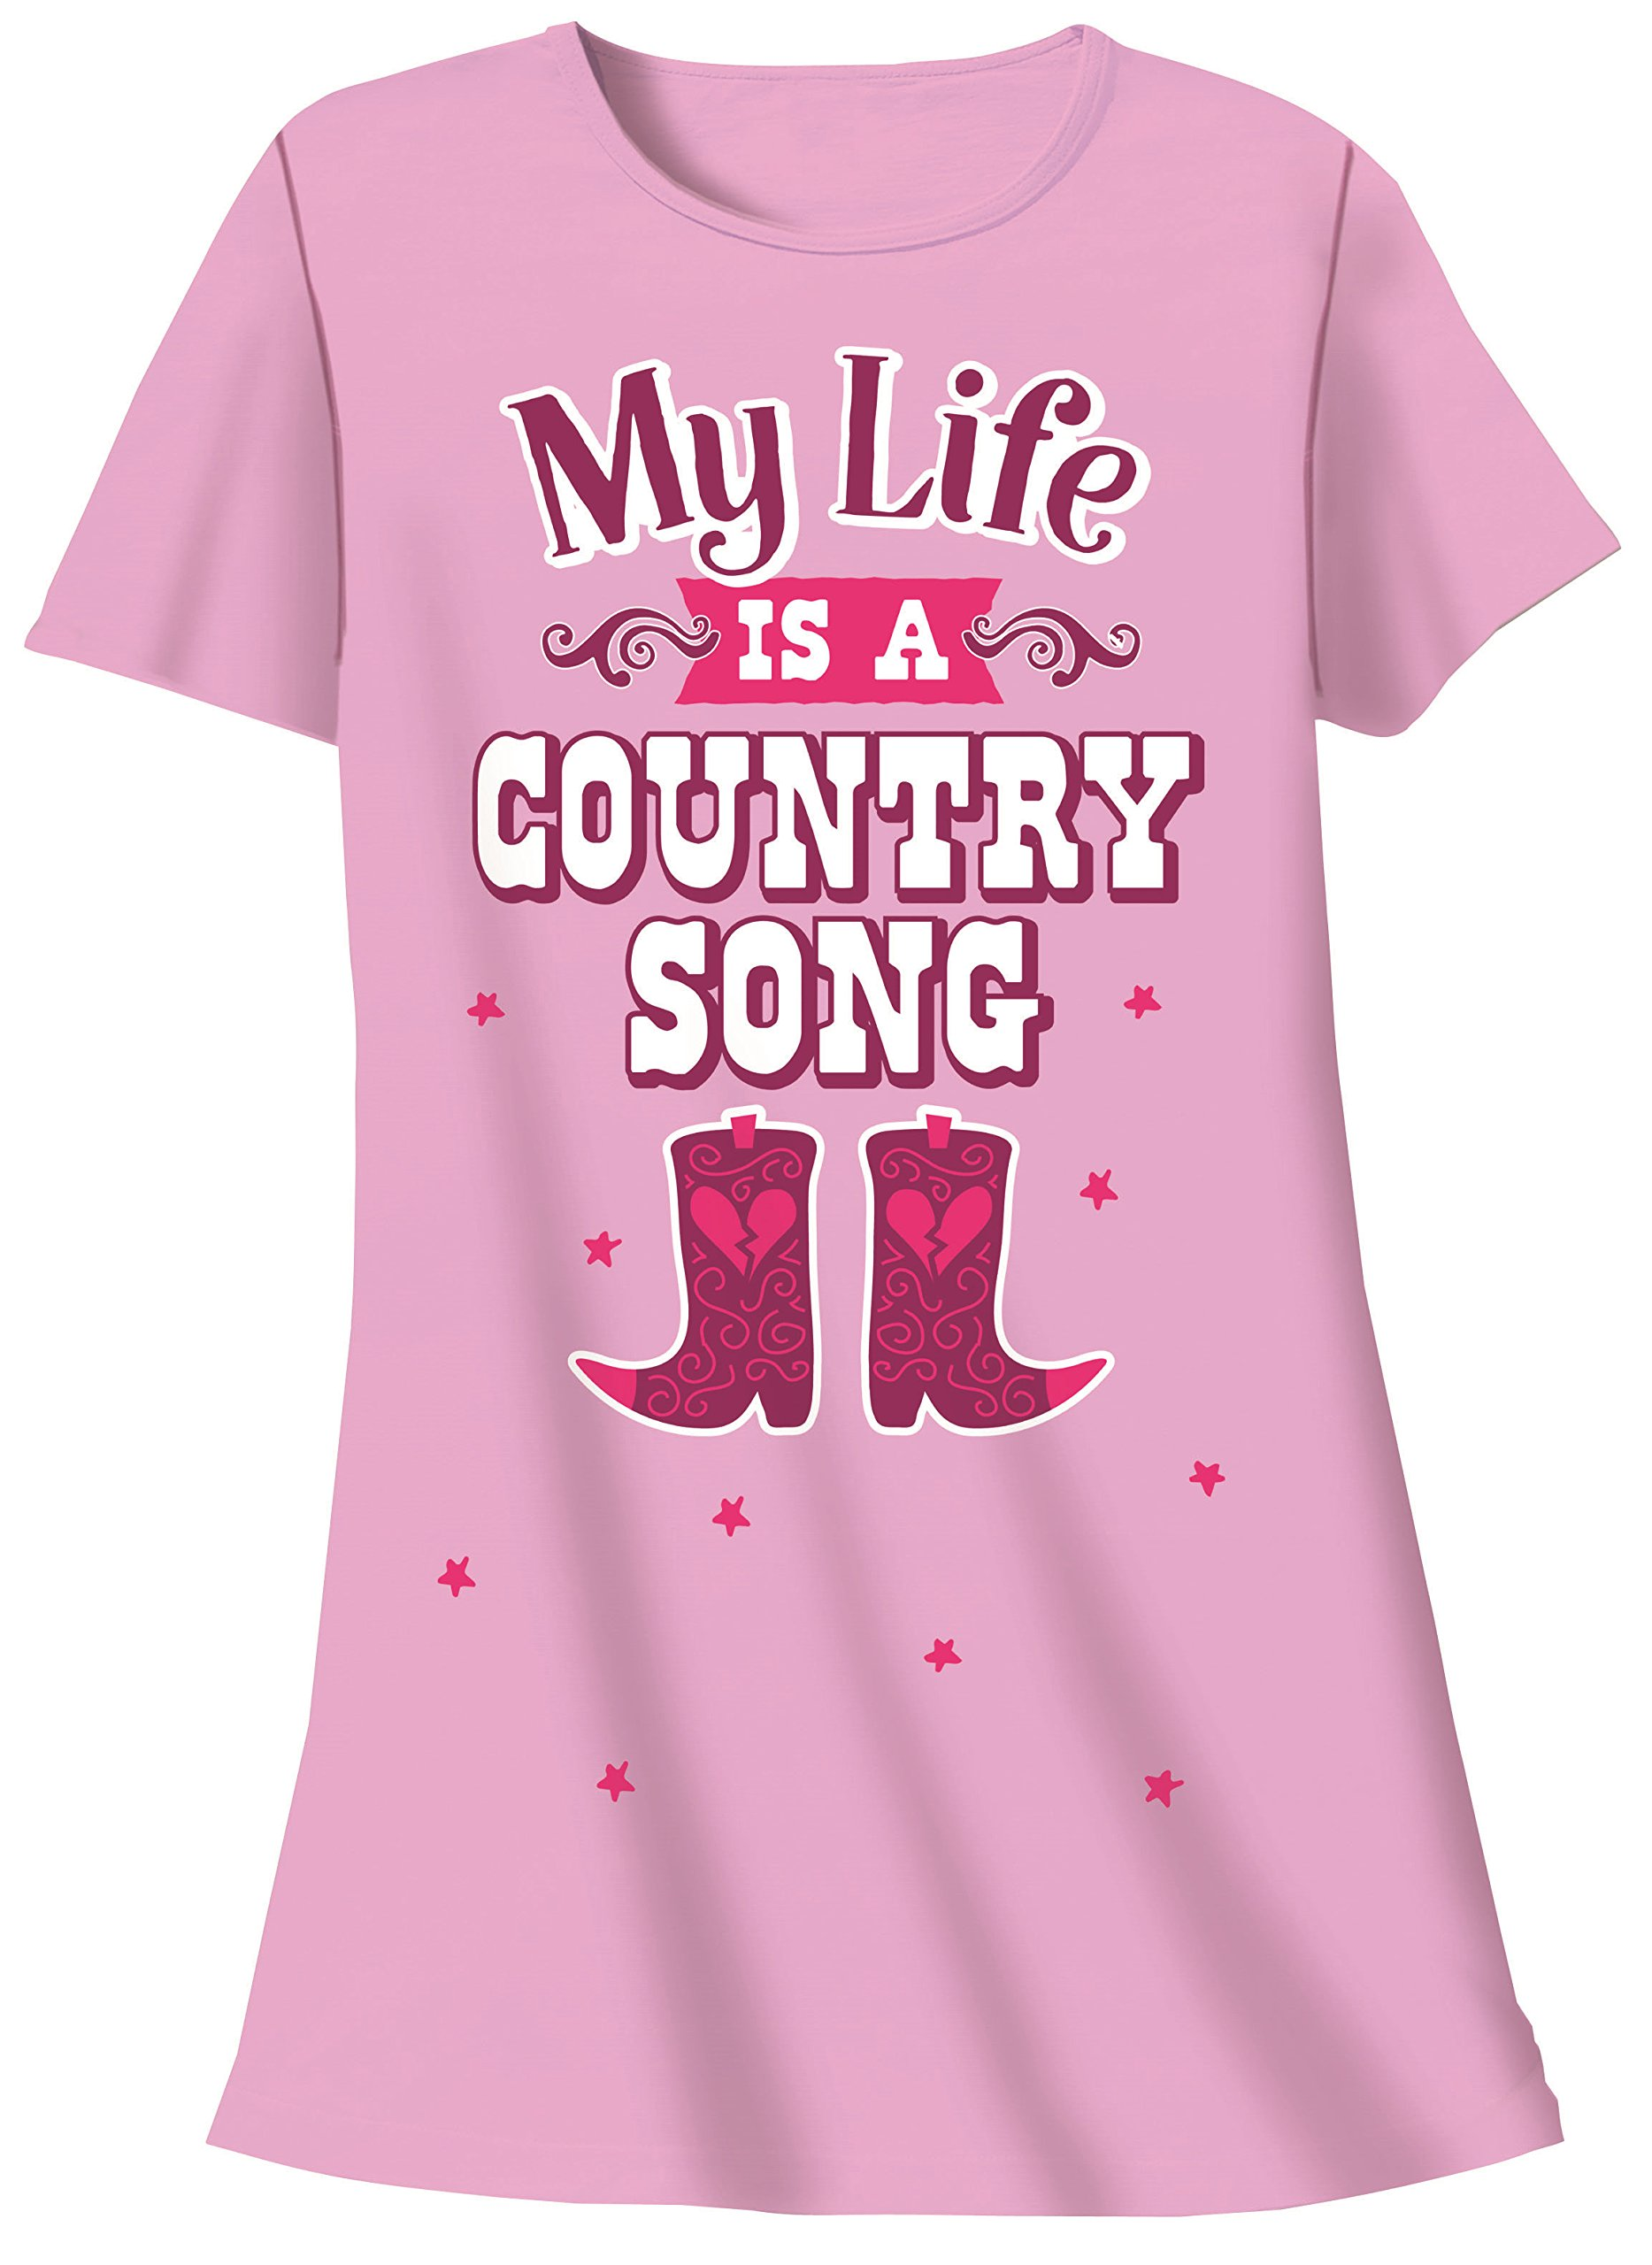 Nightshirt - My Life is Country Song Cowboy Boots, One Size